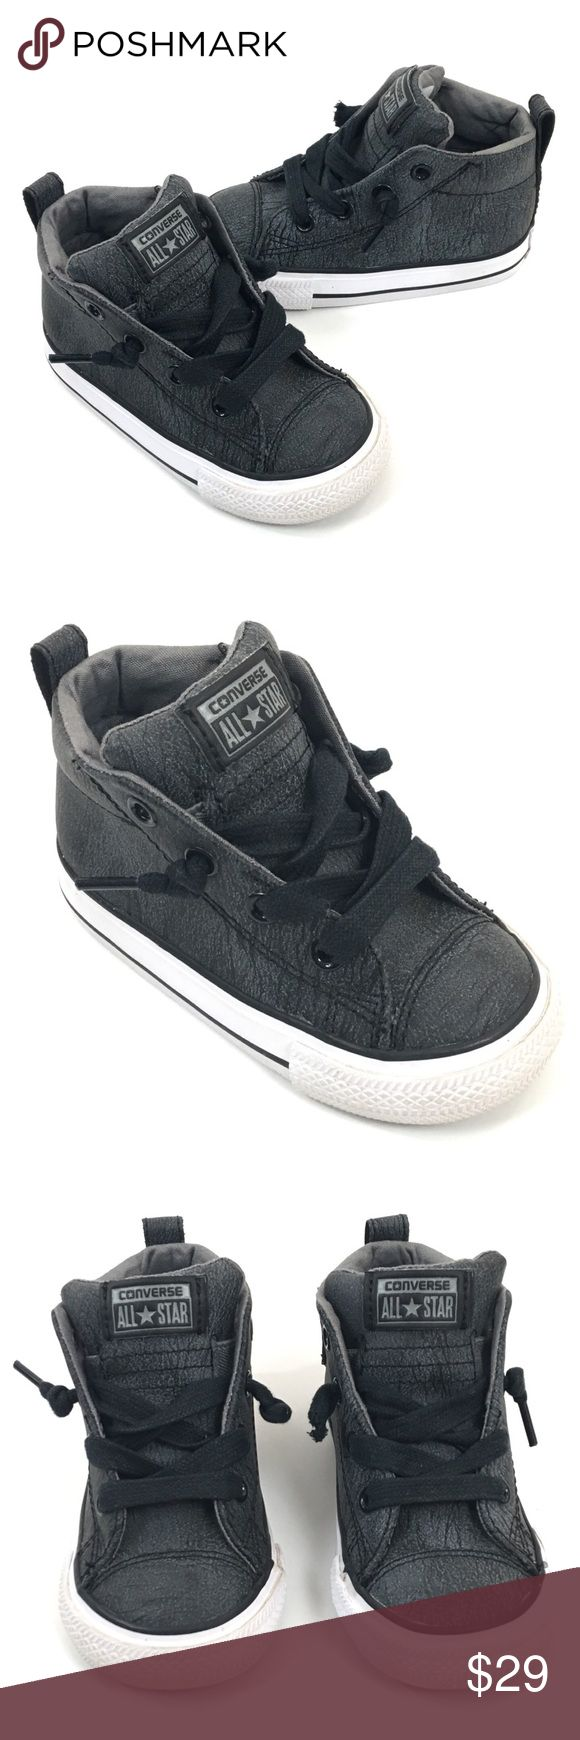 Converse All Star Street Mid Top Sneaker 6 Leather Converse Chuck Taylor All Star Street Mid Top Sneaker 6 Leather Gray Toddler  💰Savings on items placed in bundles 📦Super FAST Shipping 💸Great Deals on Offers...Ya just gotta ask🙋🏻♀️🙋🏻♂️  ▪️Condition: Used ▪️Slip-on style with decorative knotted laces ▪️Runs large; order next size down ▪️Leather or textile upper/textile lining/rubber sole  (See Pictures for More Details)  💌Please Reach Out With Any Questions  🚫Sorry No Trades…